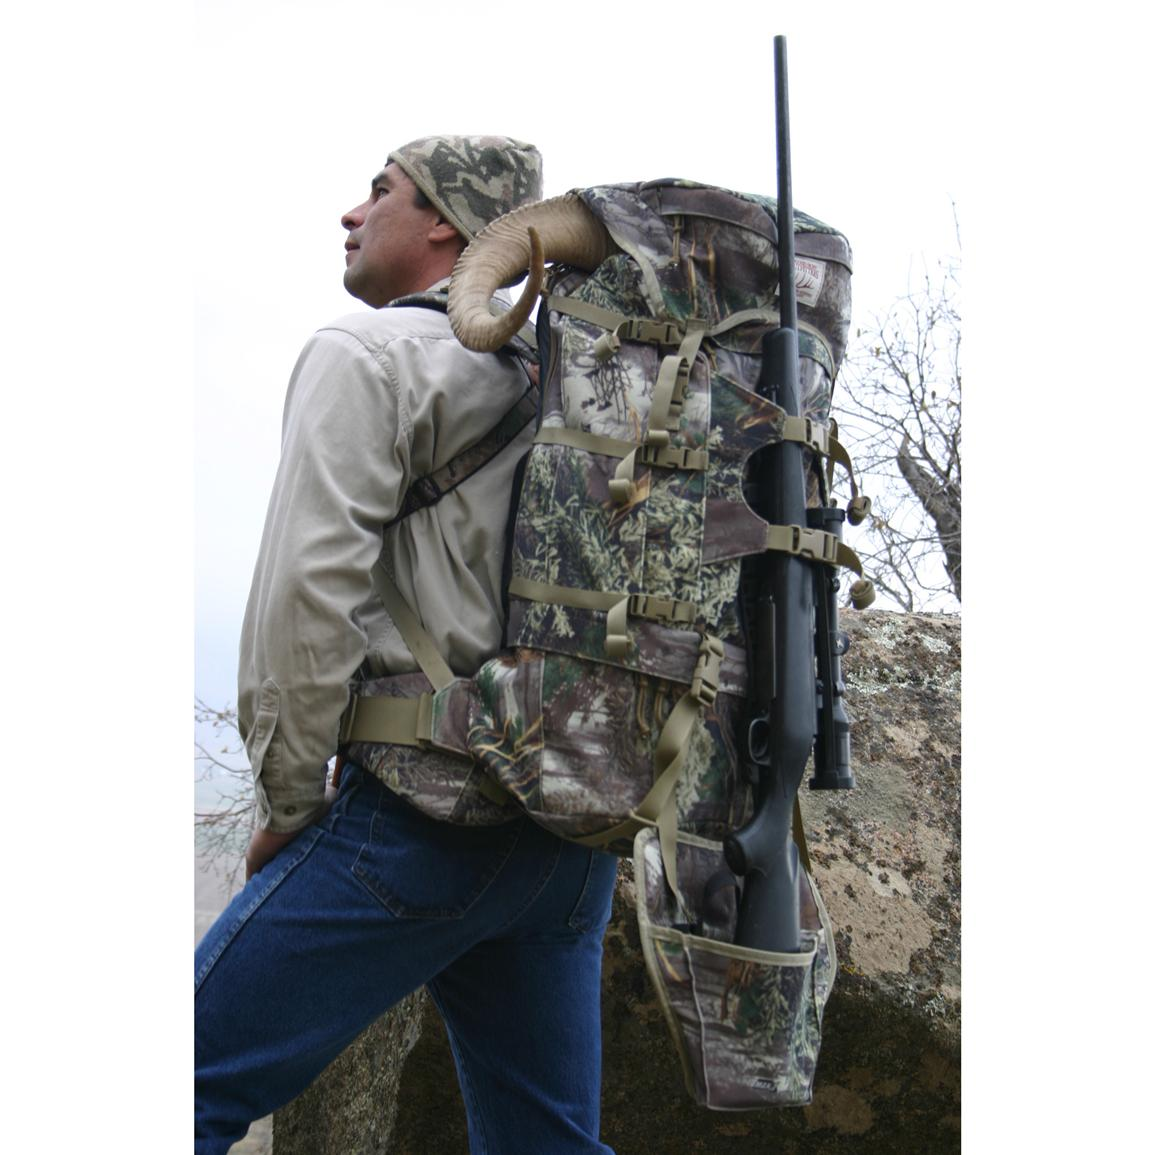 Heavy duty carry handle for easy transporting and hanging the pack in a tree stand